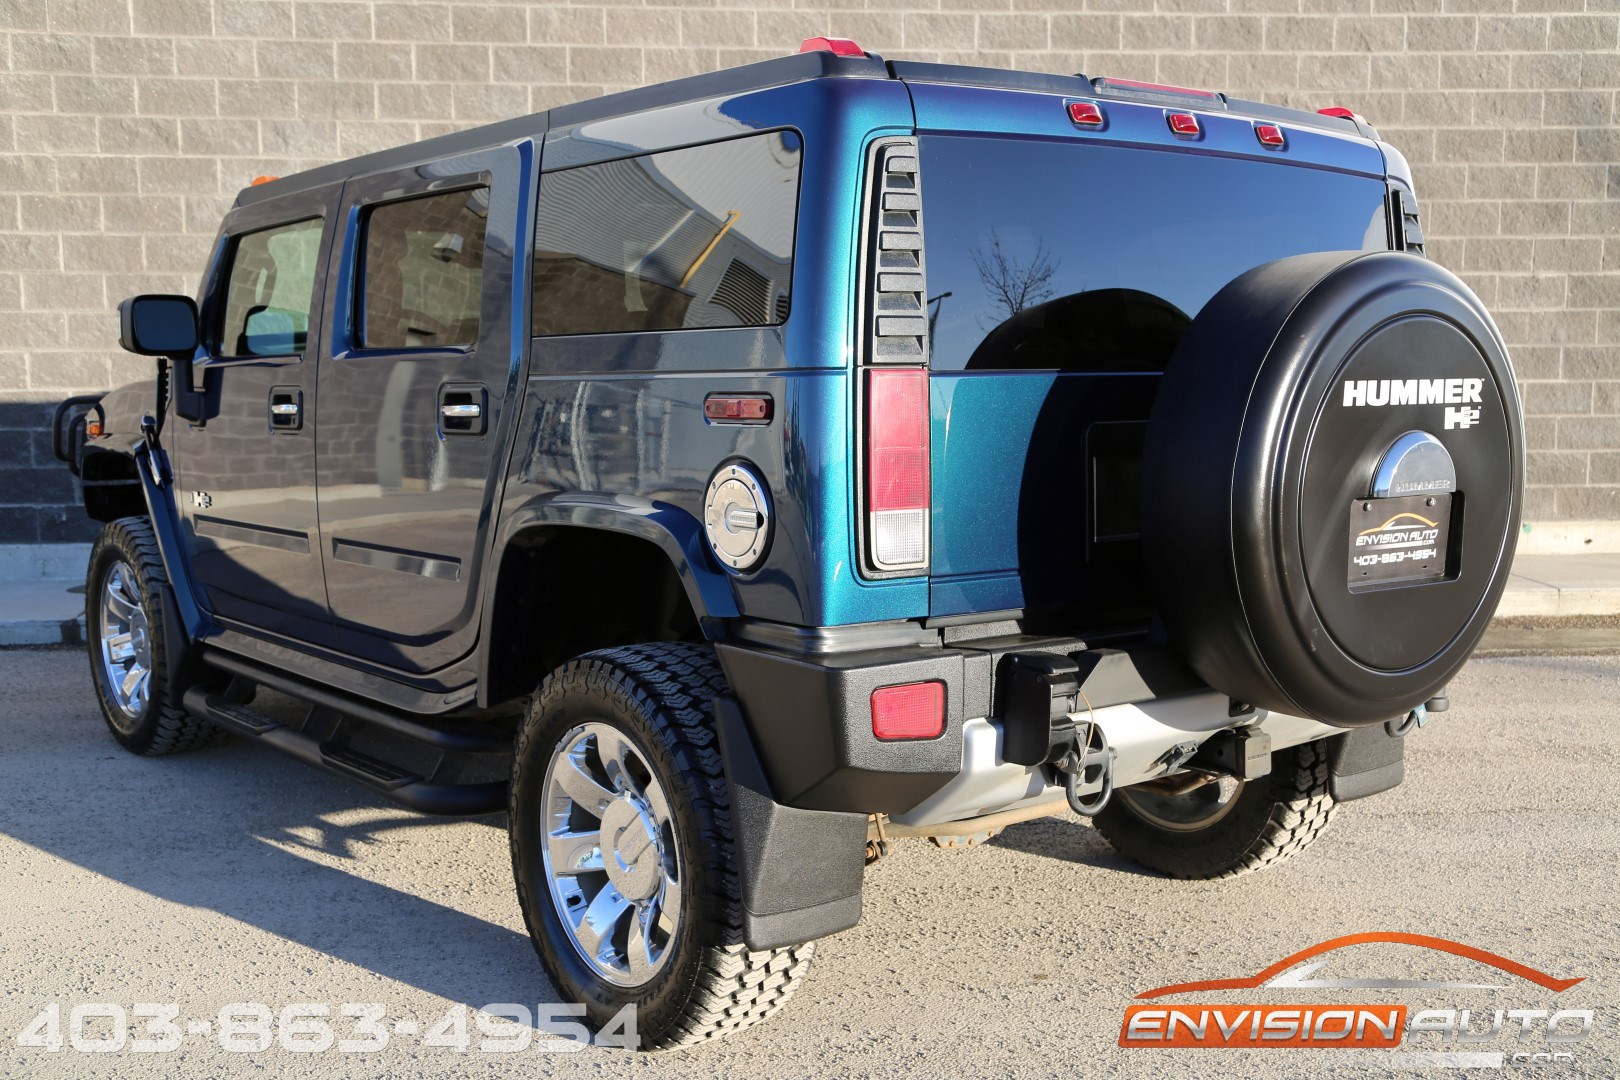 2008 H2 Hummer SUV Limited Edition Ultra Marine – Air Ride – Navi – DVD  Vehicle Specification